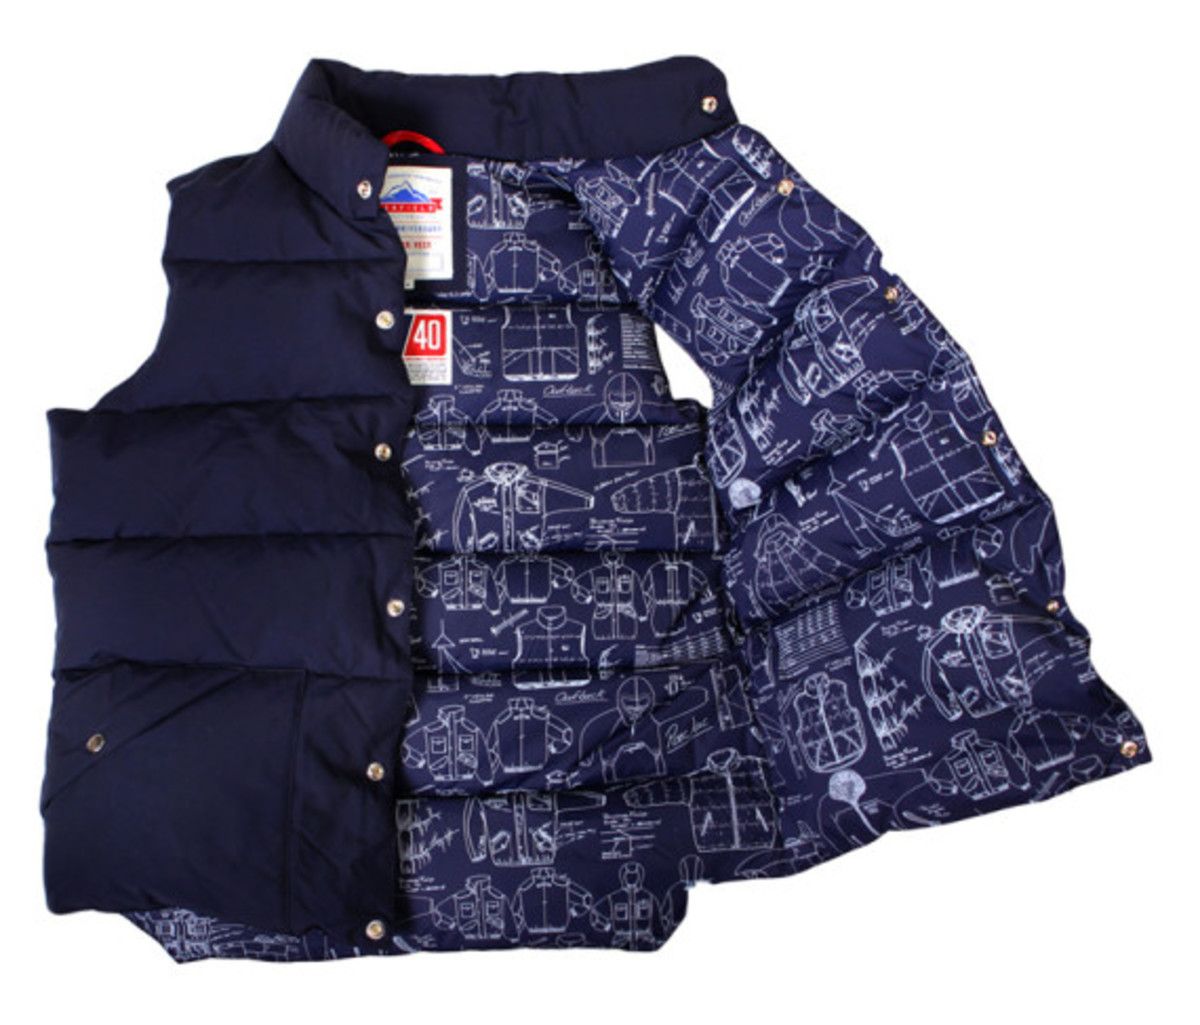 penfield-unveils-40th-anniversary-collection-05